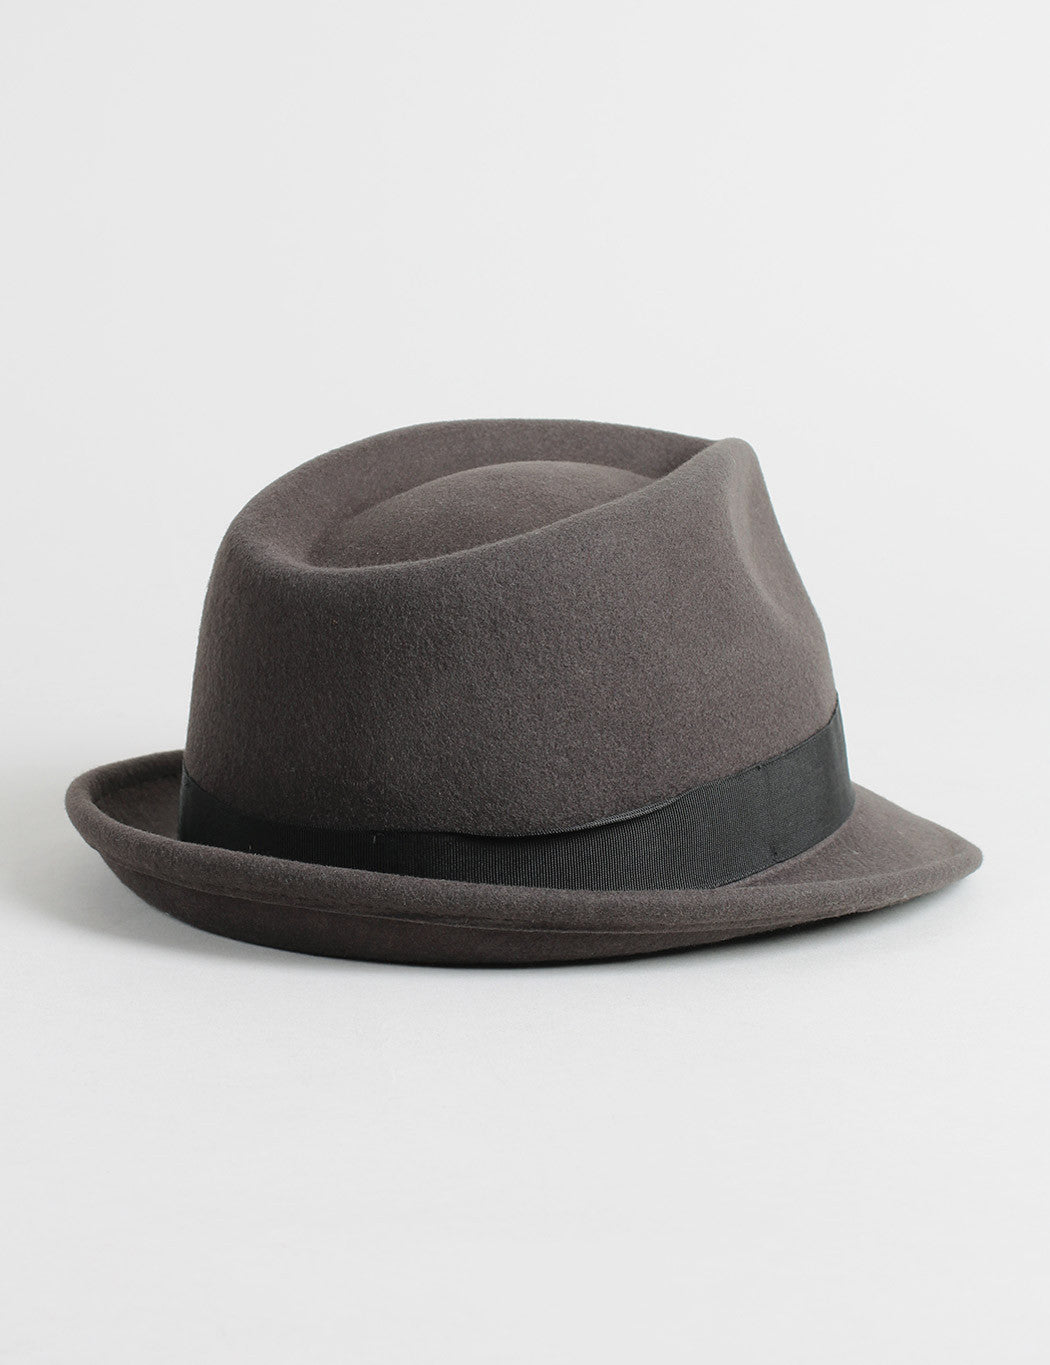 Stetson Richmond Felt Feather Trilby Hat - Forest Green